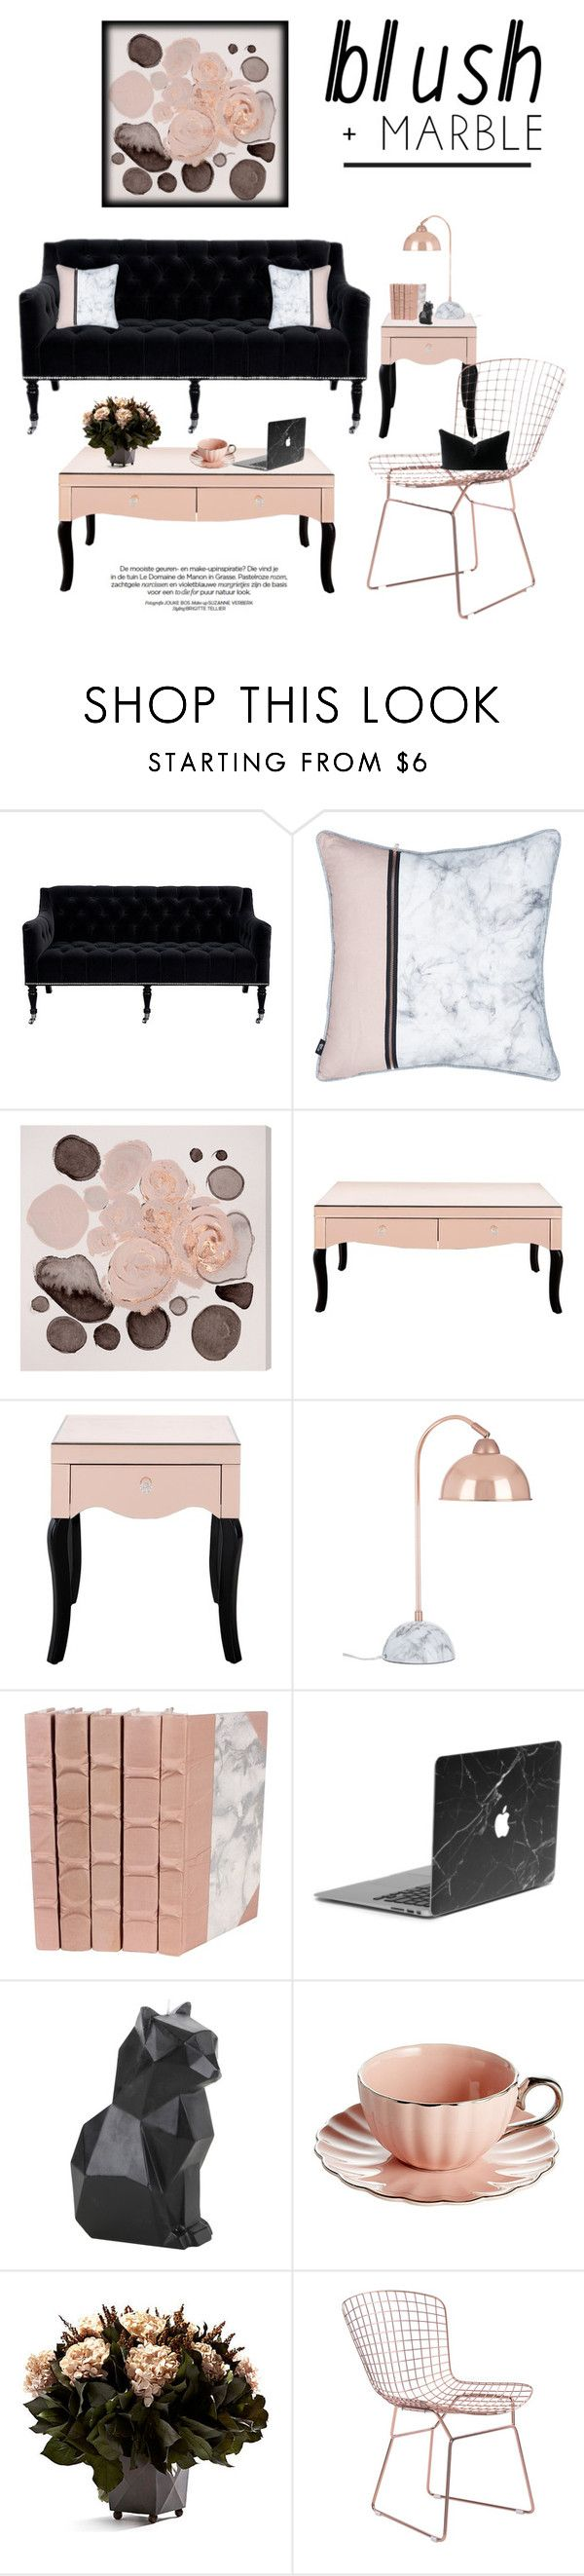 best 25+ rose gold decor ideas on pinterest | copper decor, blush